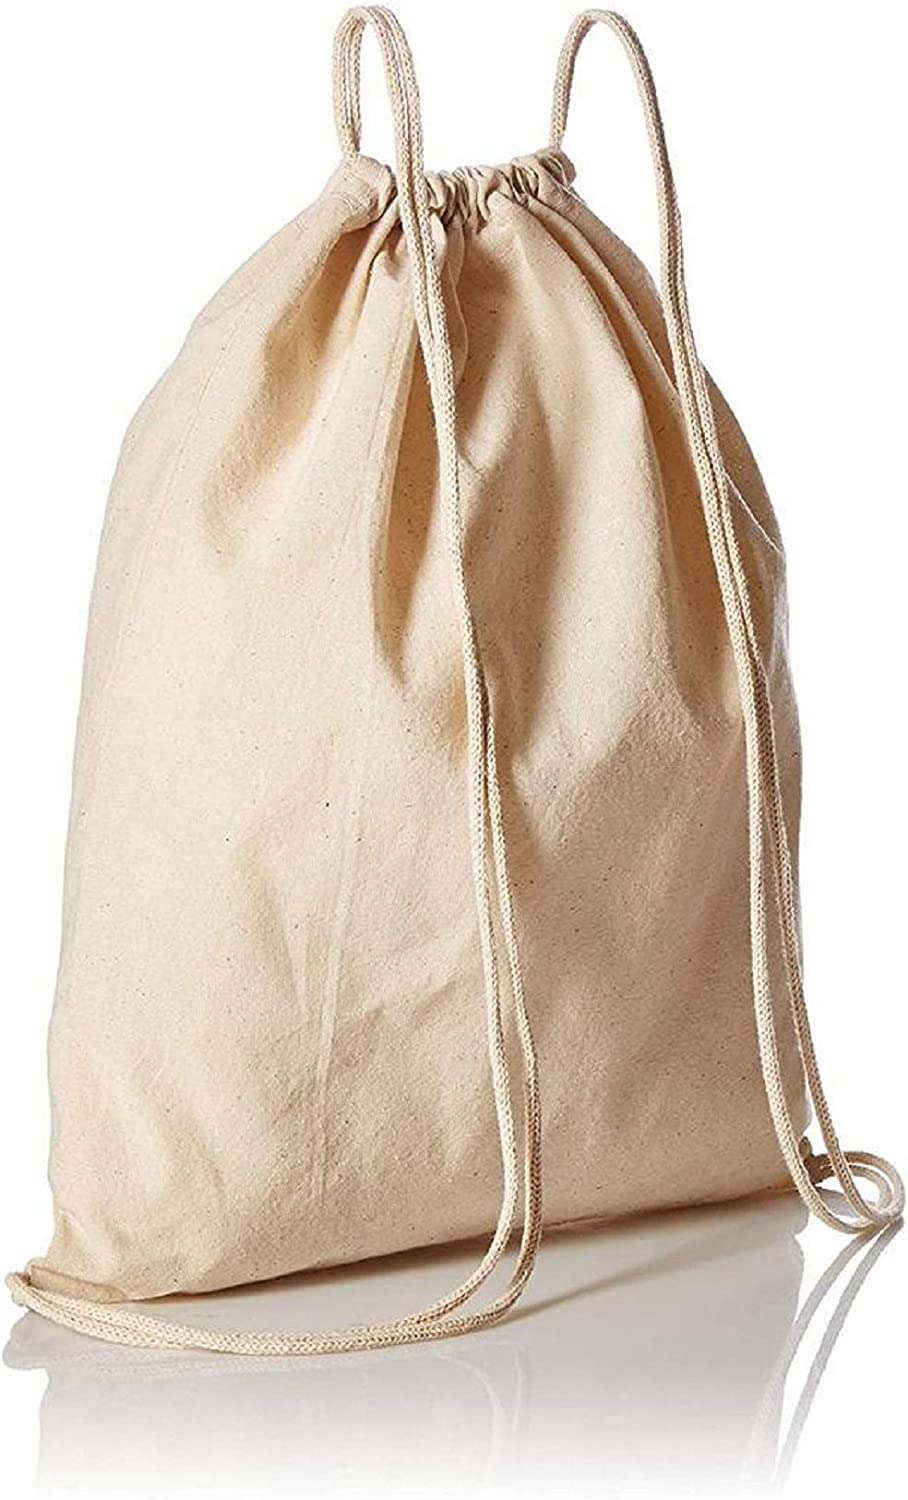 natural, One/_Size 12 Pack-Promotional Organic Cotton Drawstring Tote Bags//Backpacks Global/_Trading Deals